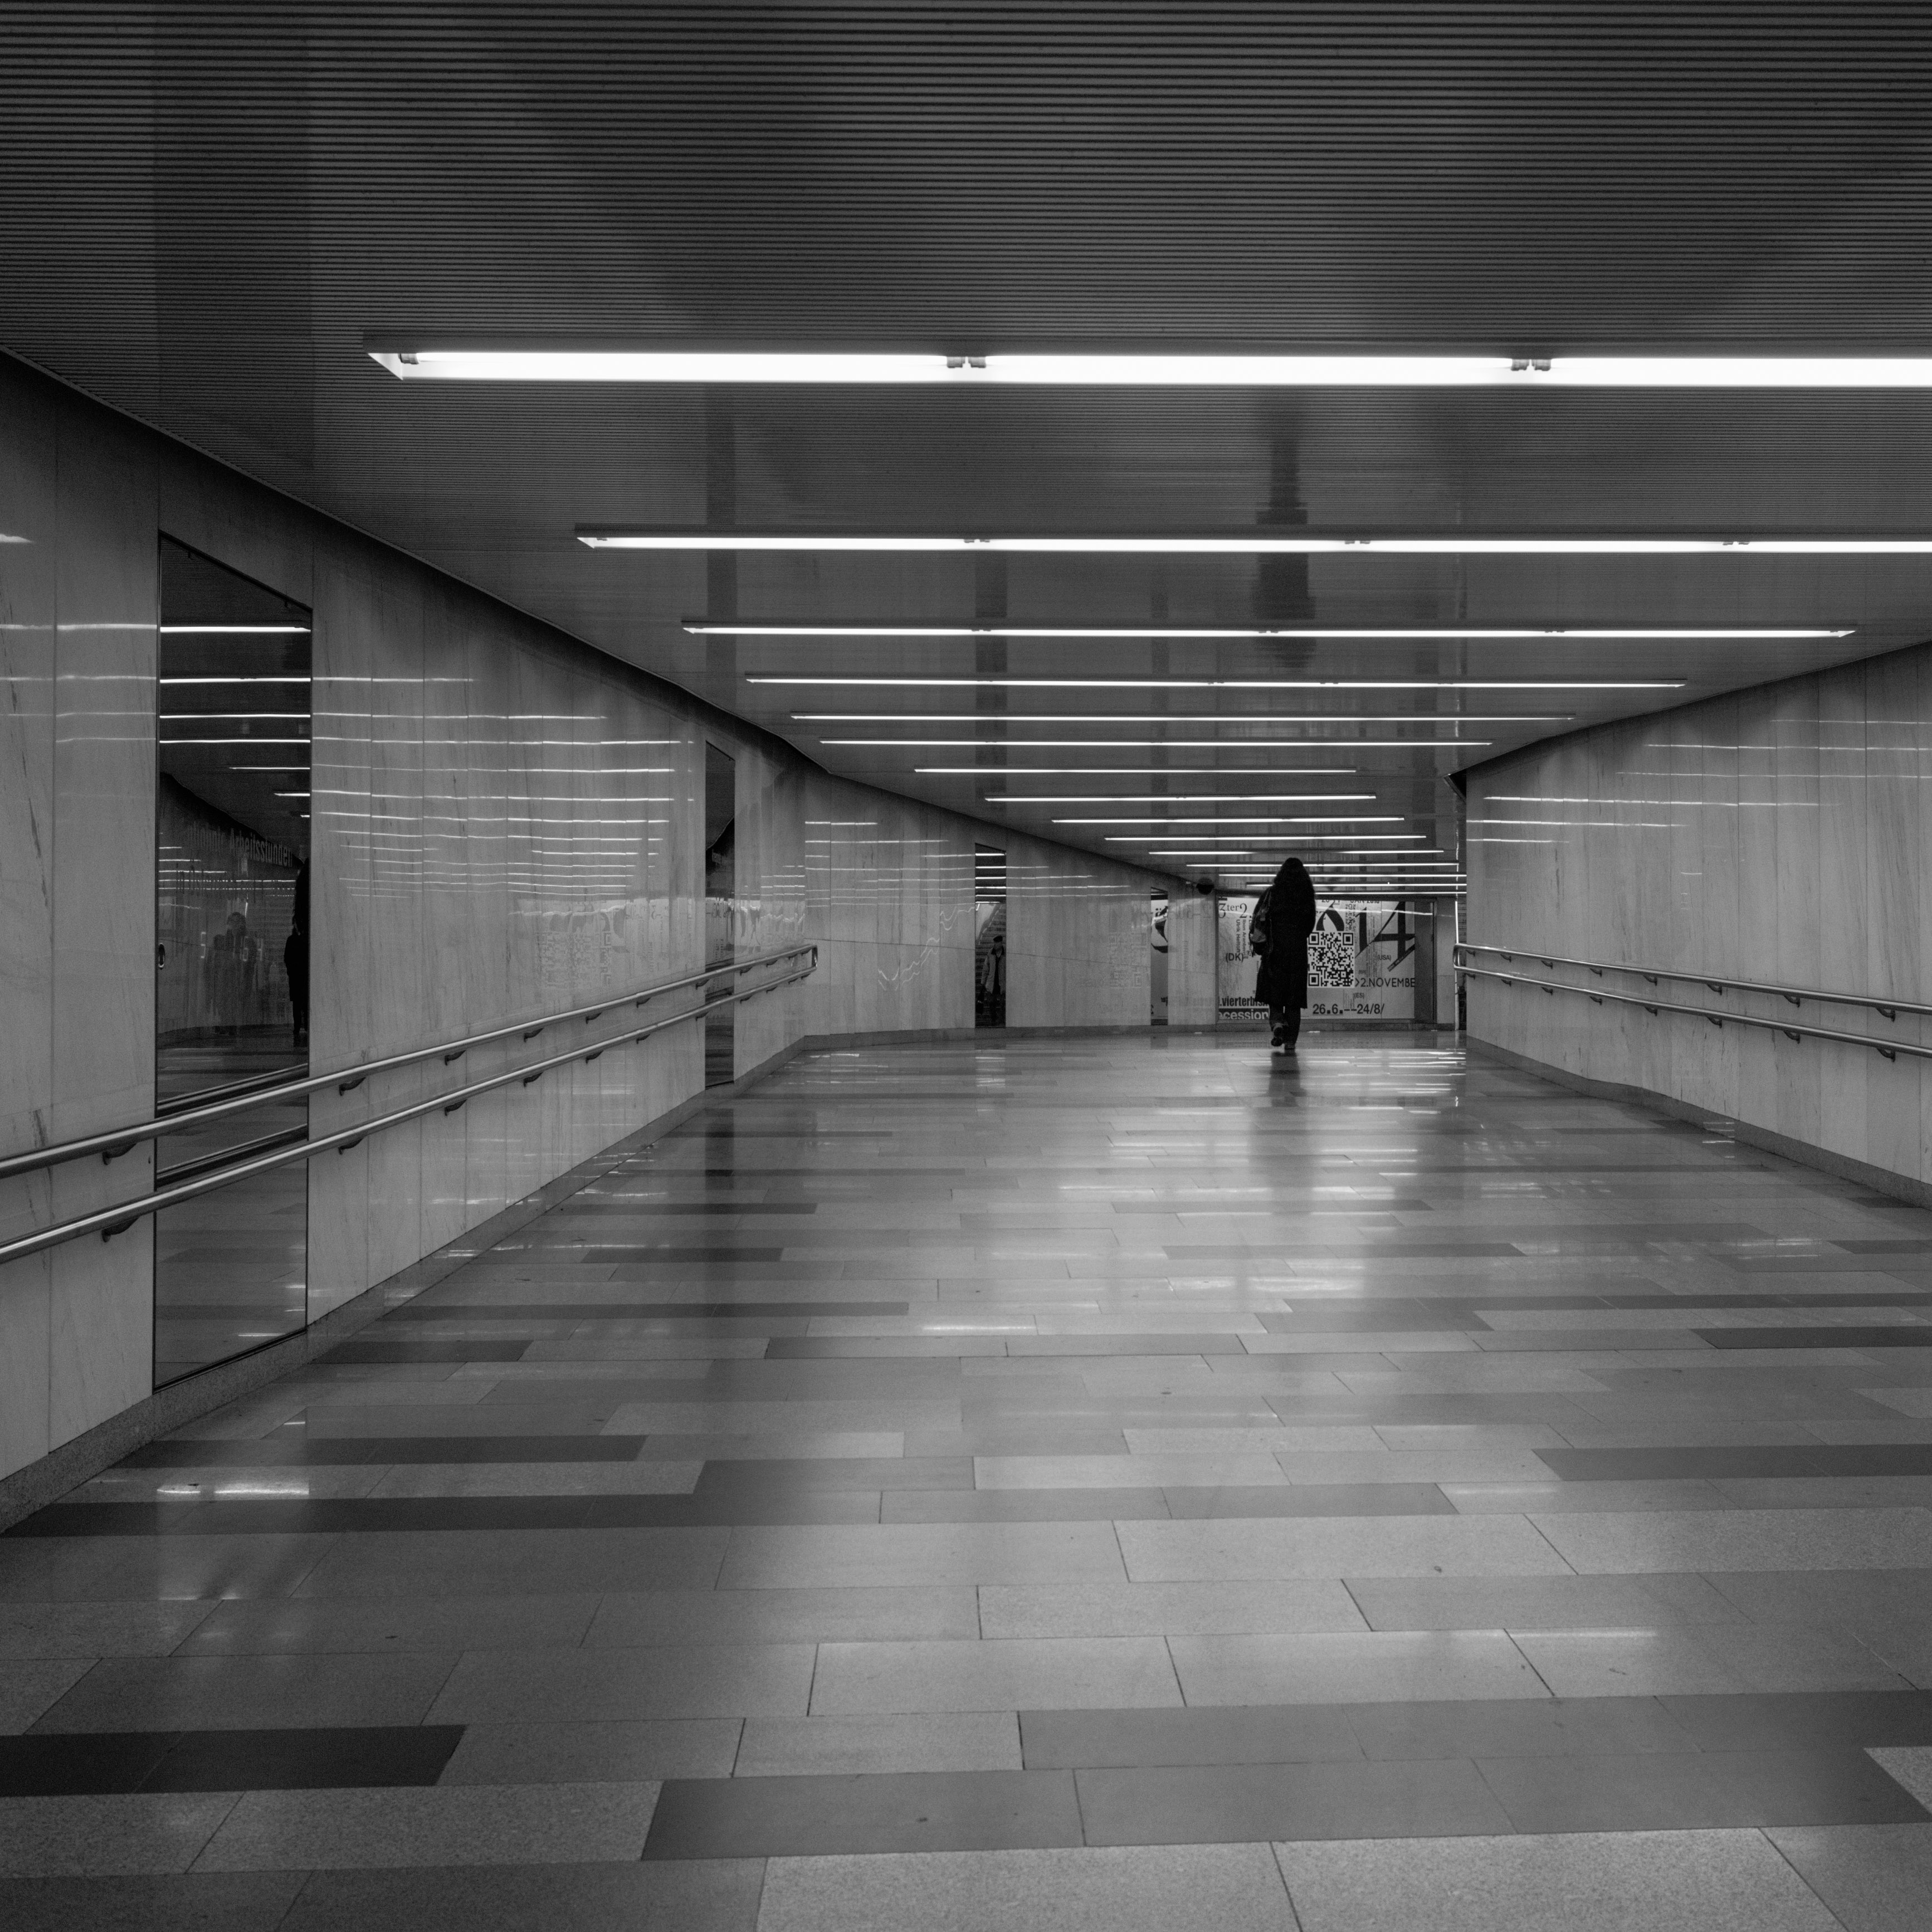 A passage at Somewhere (Innere Stadt, Austria) with Leica M Monochrom (Leica Summilux-M 35mm f/1.4 ASPH.) by Magnus L Andersson (photography.anderssoneklund.se) at 2013-11-19 13:51:35